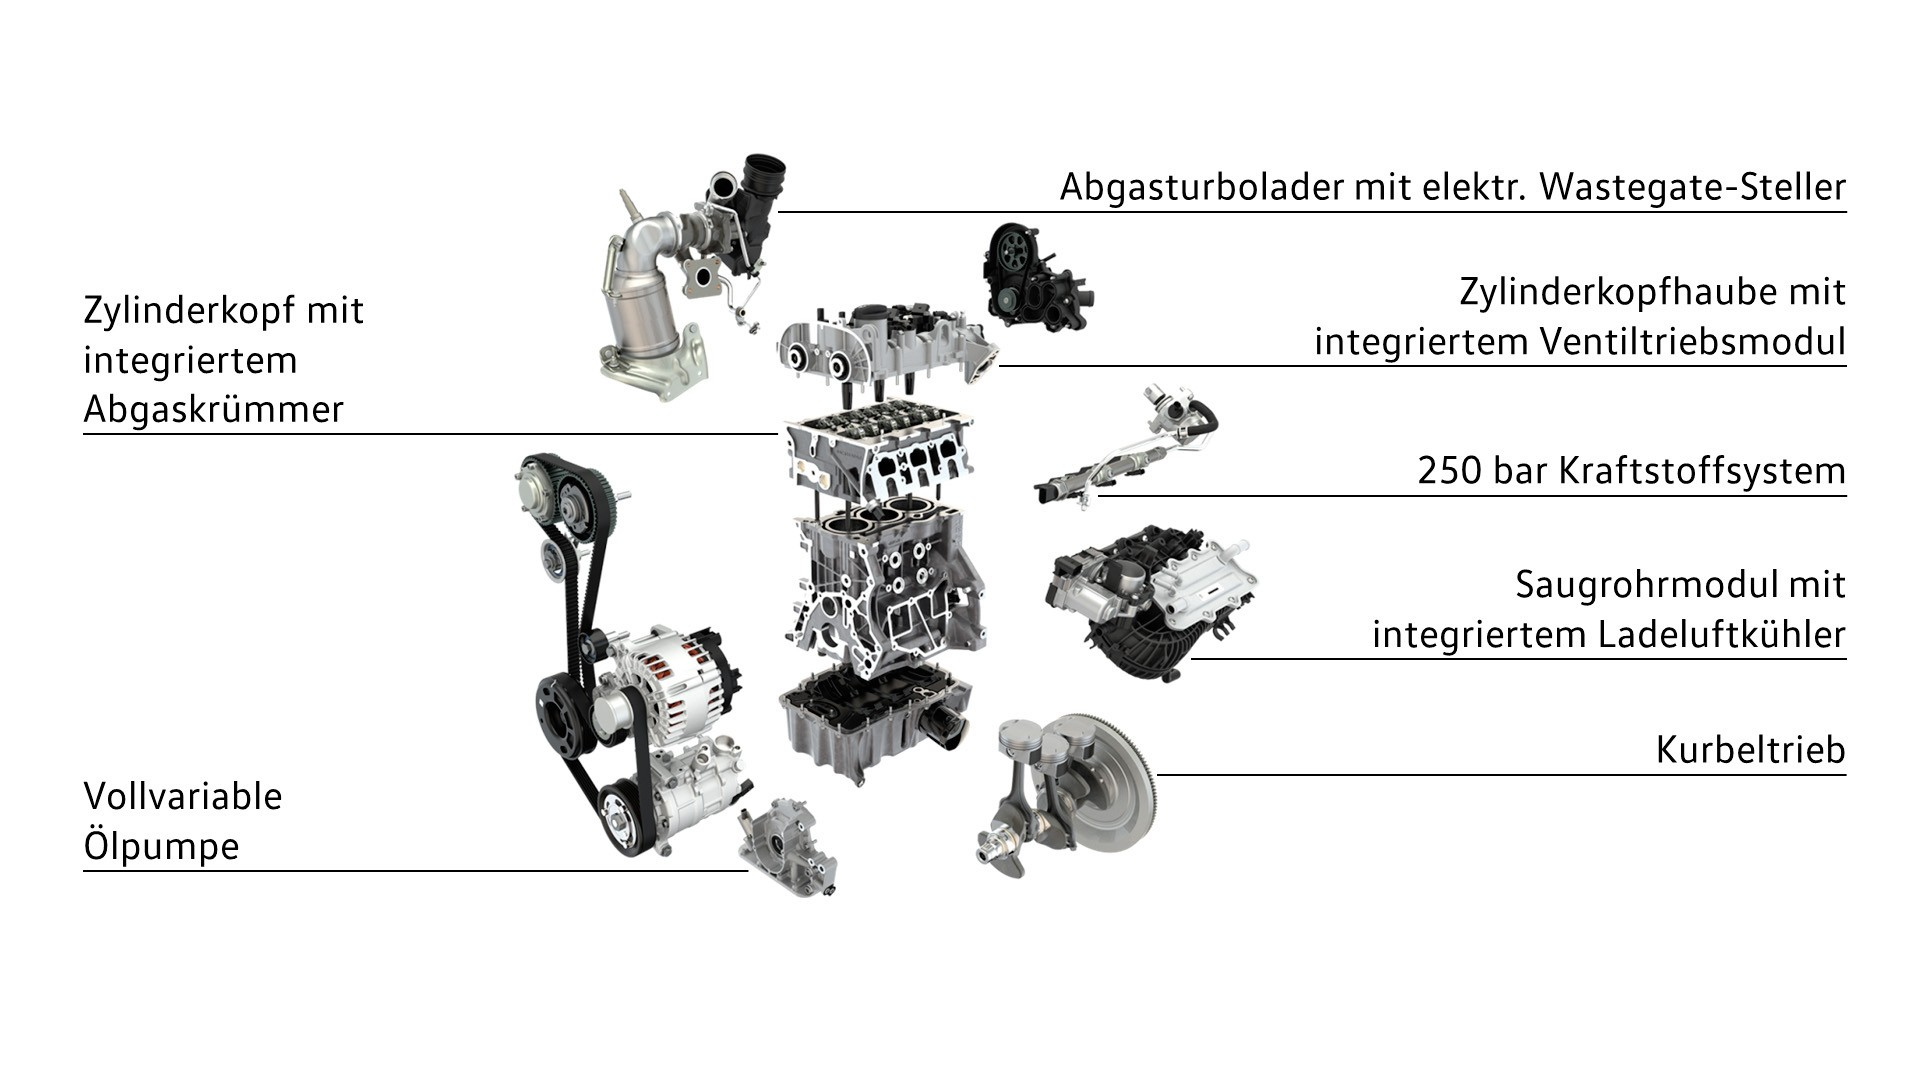 454441418627760541 as well Tiguan Engine Diagram together with 1303886 further Volkswagen Reveals Golf Sportsvan Tsi Bluemotion With 1 Liter Engine Photo Gallery 96350 in addition 88473 Who Here Has Craziest Collection Paintball Guns 9. on future vw cc